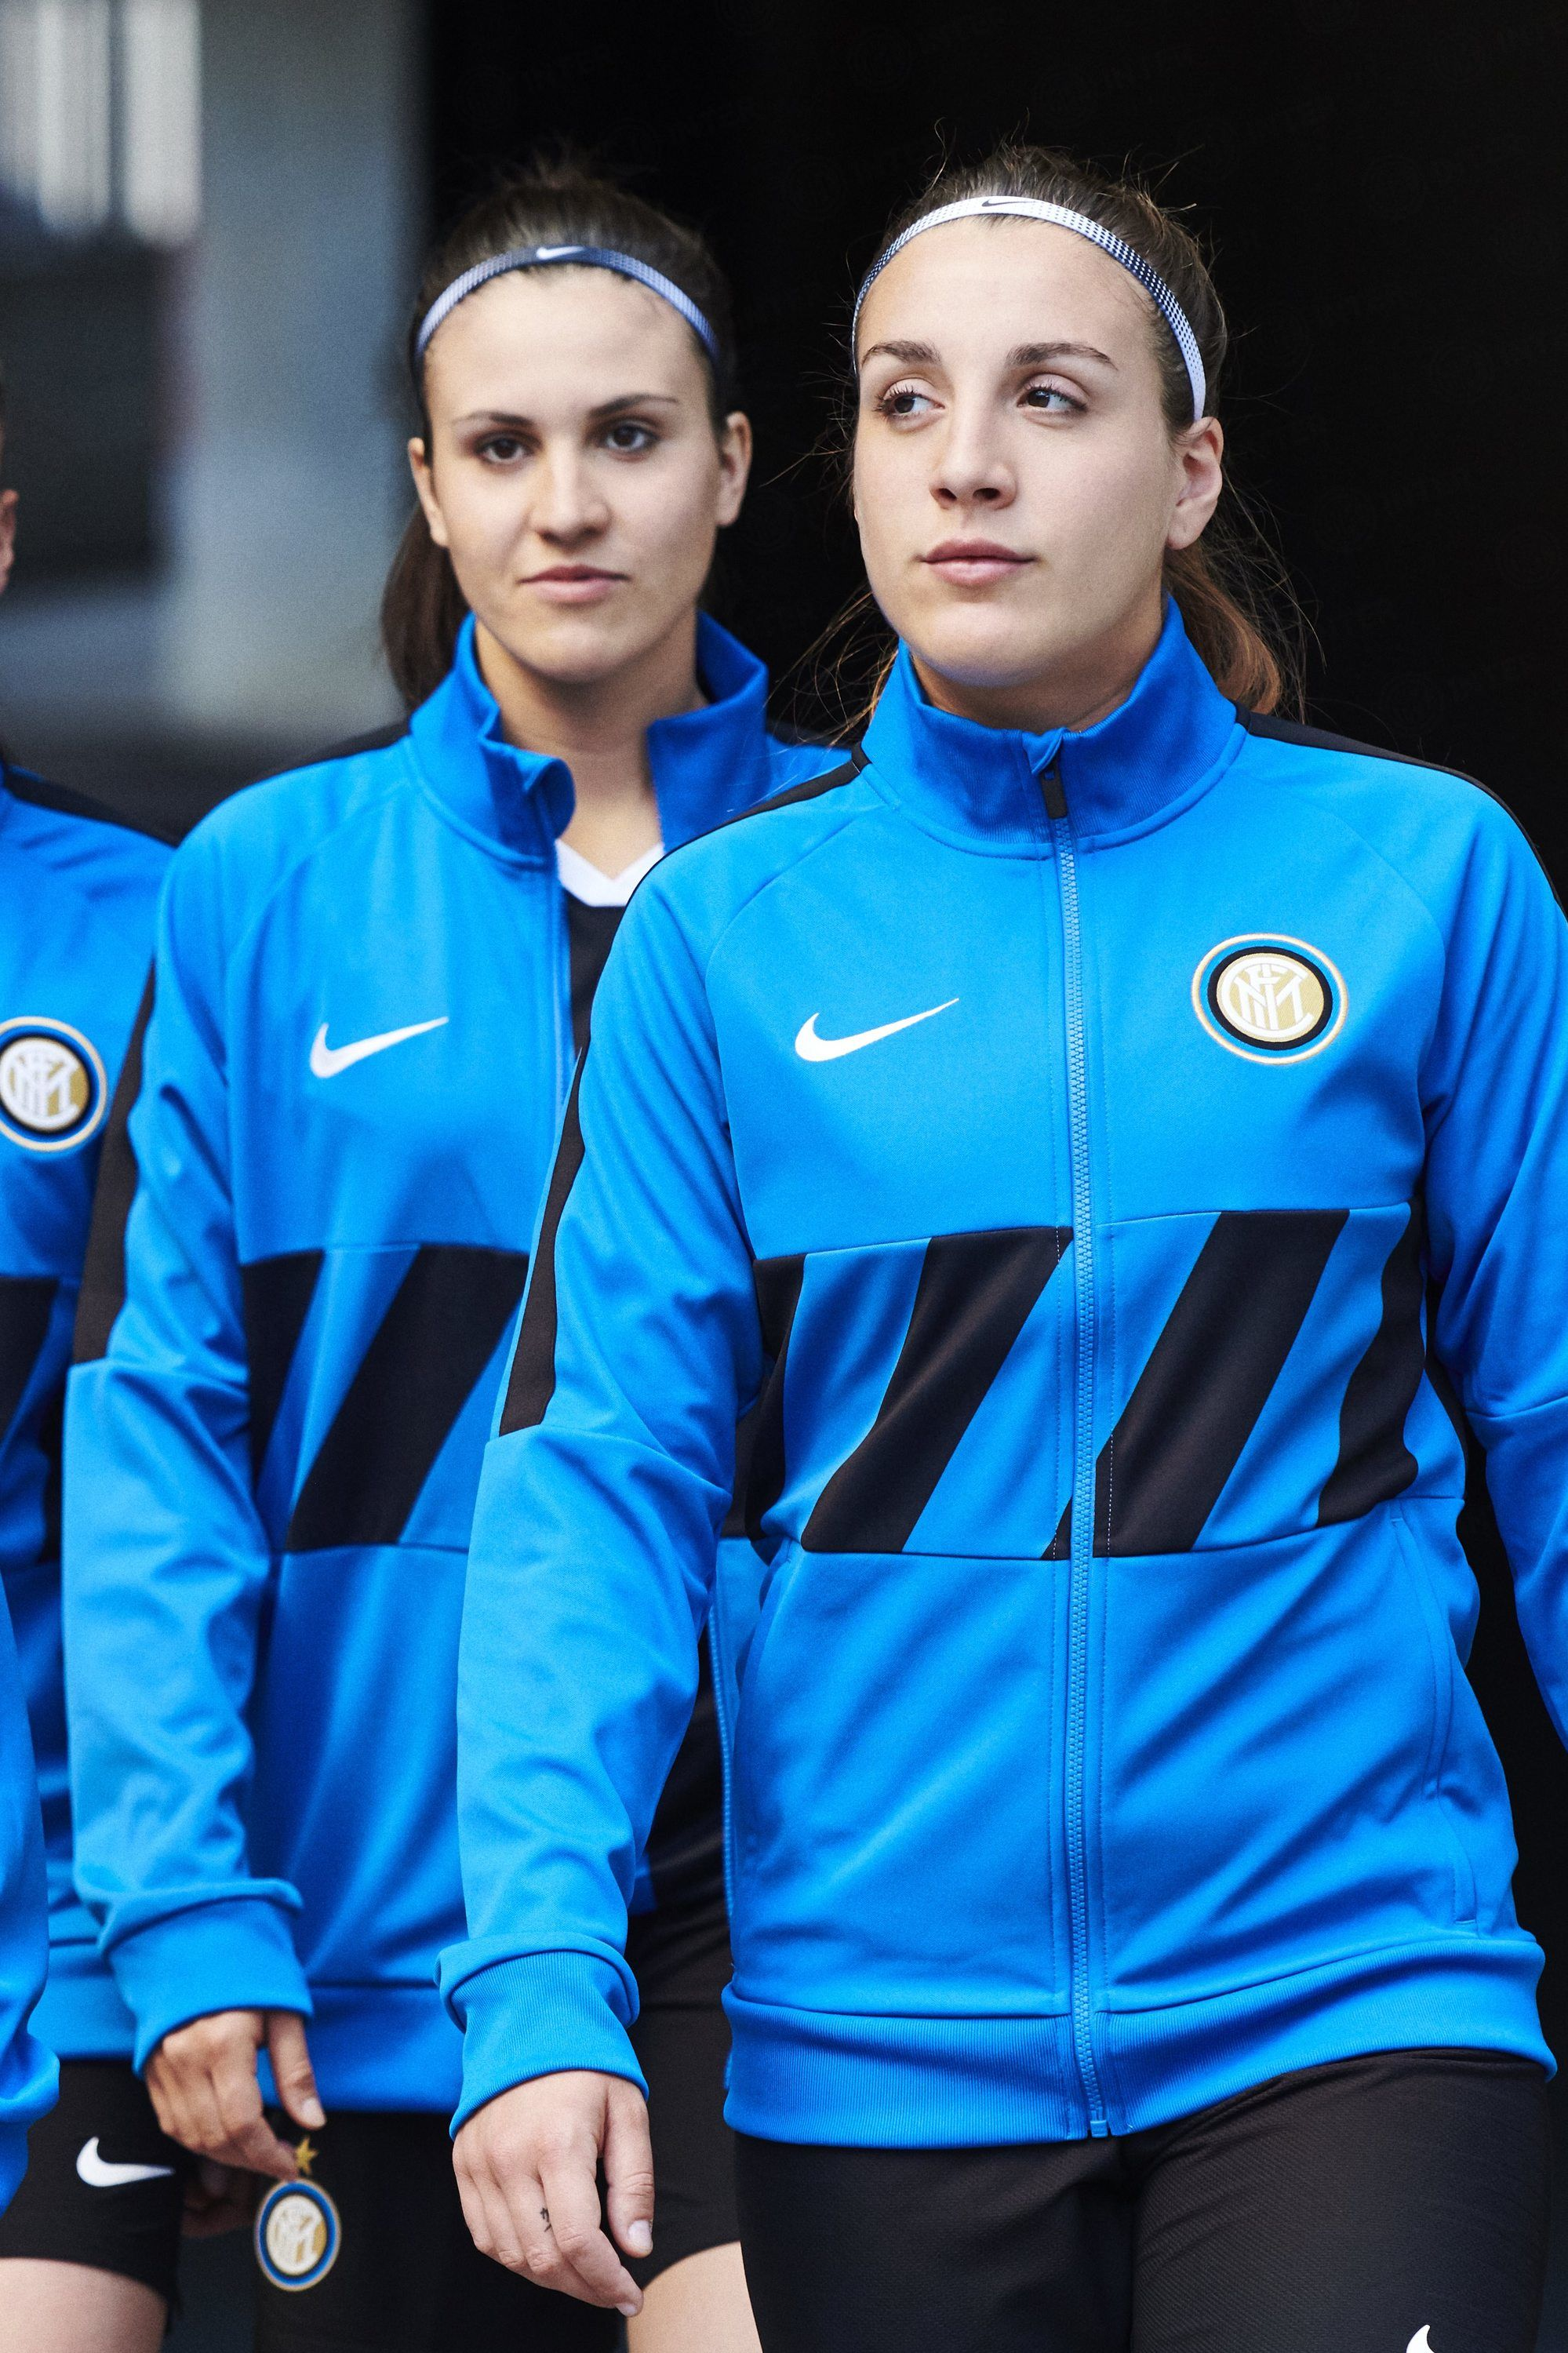 Inter and Nike present the 2019-20 Home Shirt, previewed by Inter Women